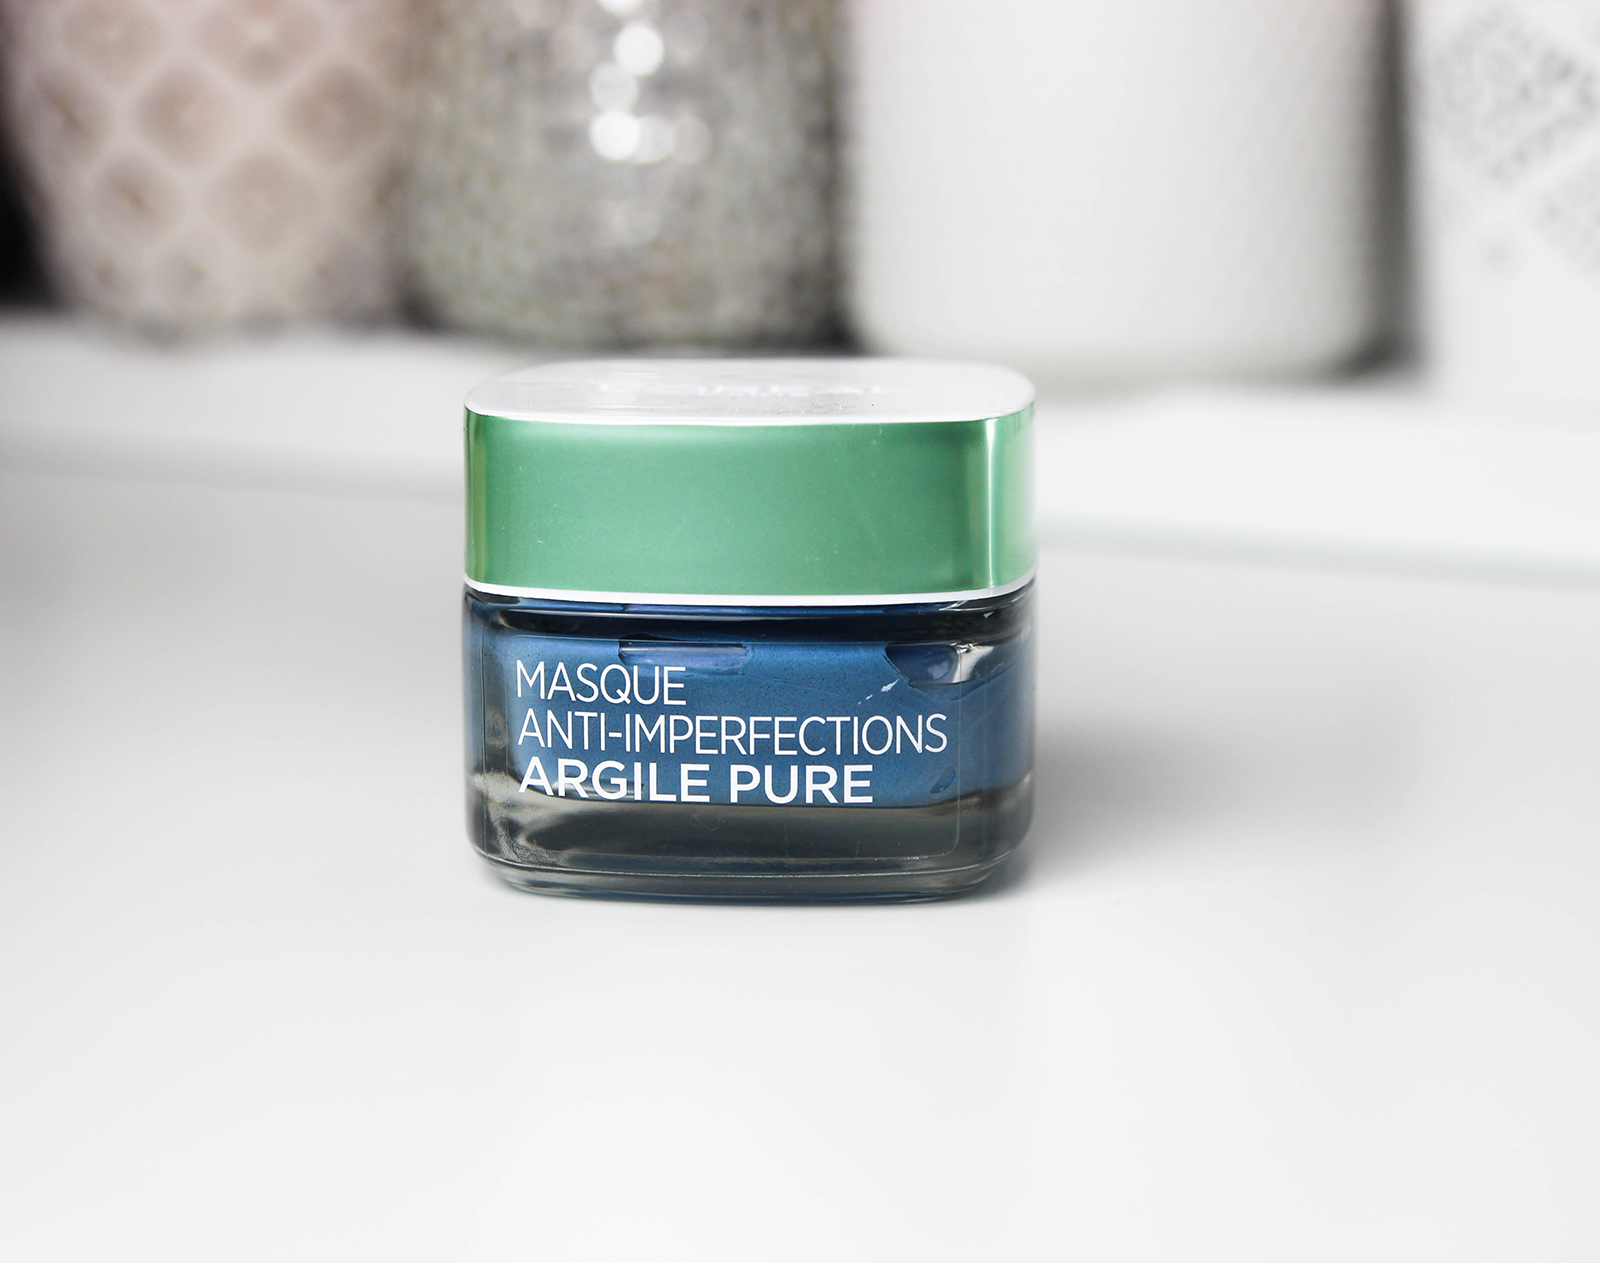 LOREAL_Masque Anti-Imperfections Argile Pure_8